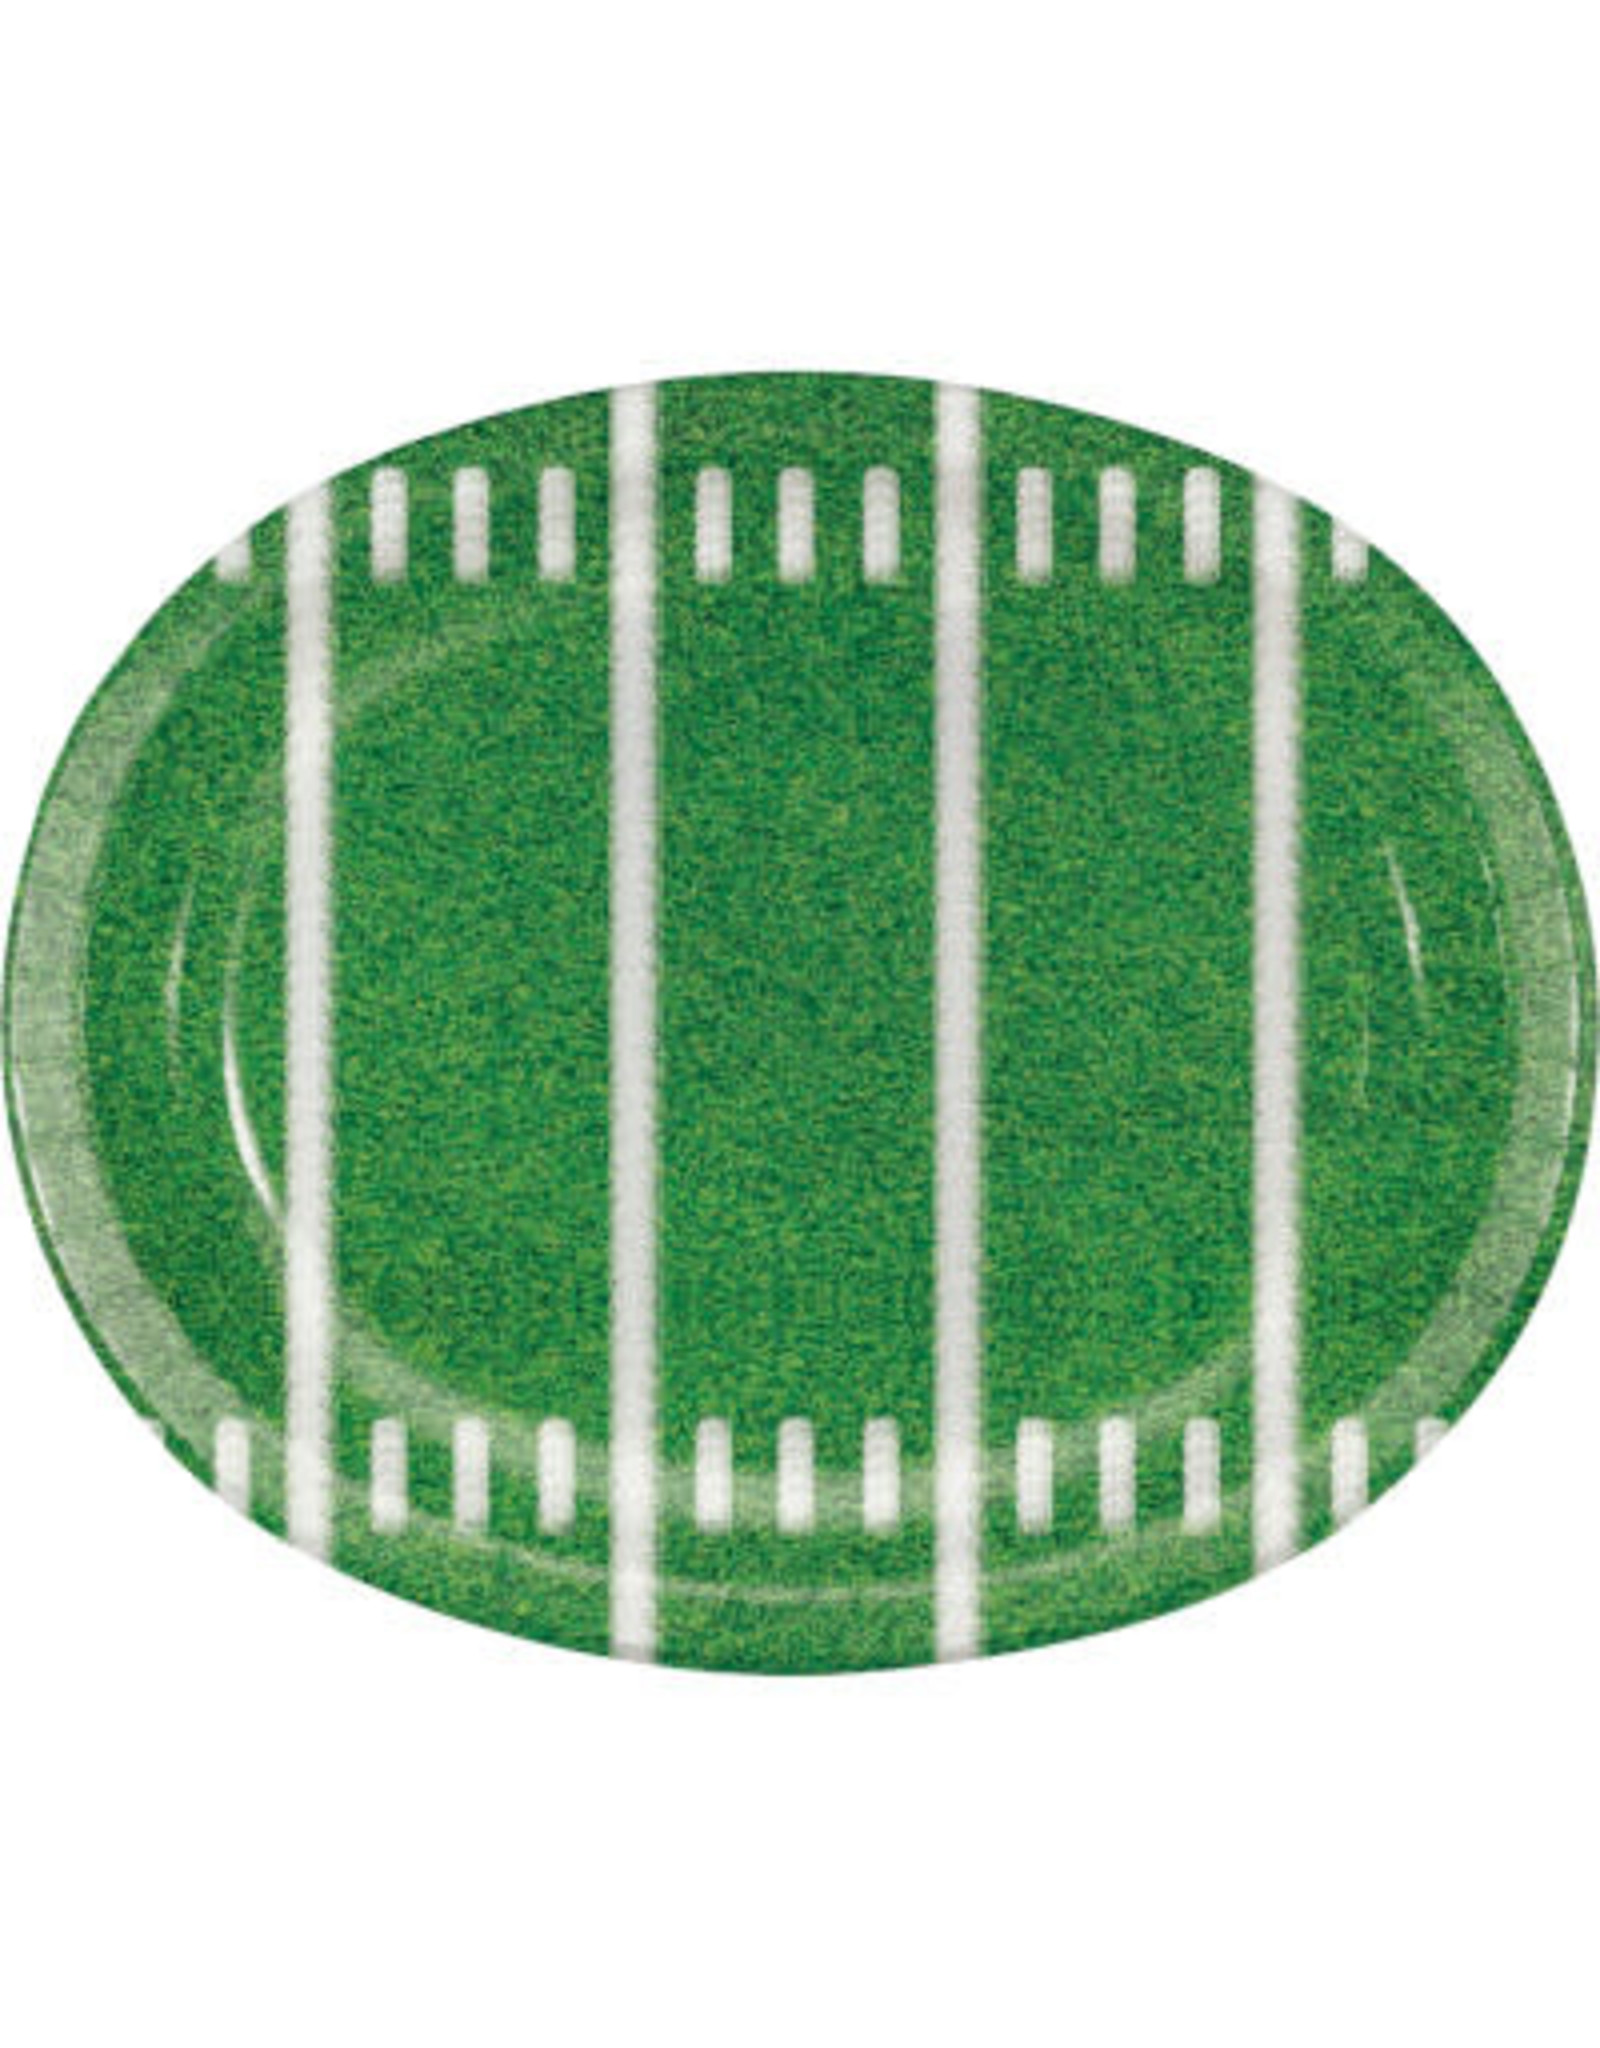 creative converting Game Time Oval Platters - 8ct.